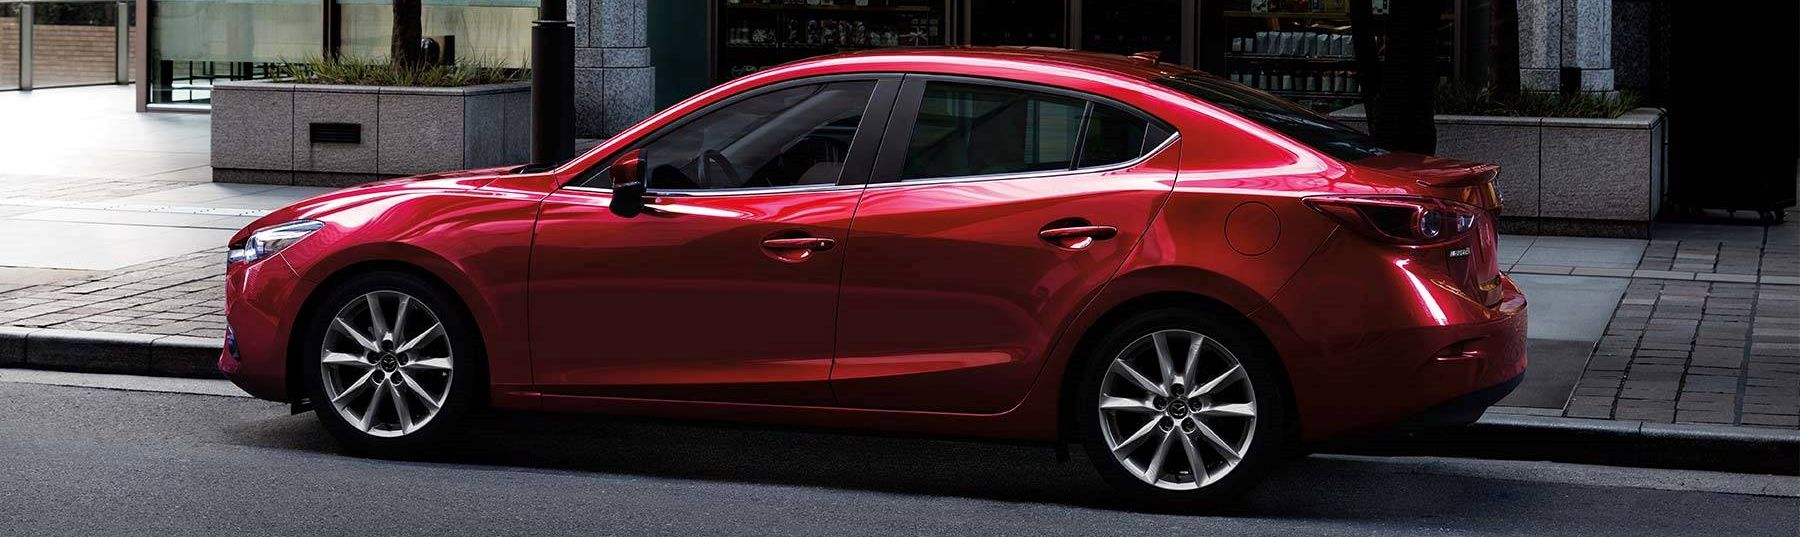 2018 Mazda3 Financing in New Braunfels, TX